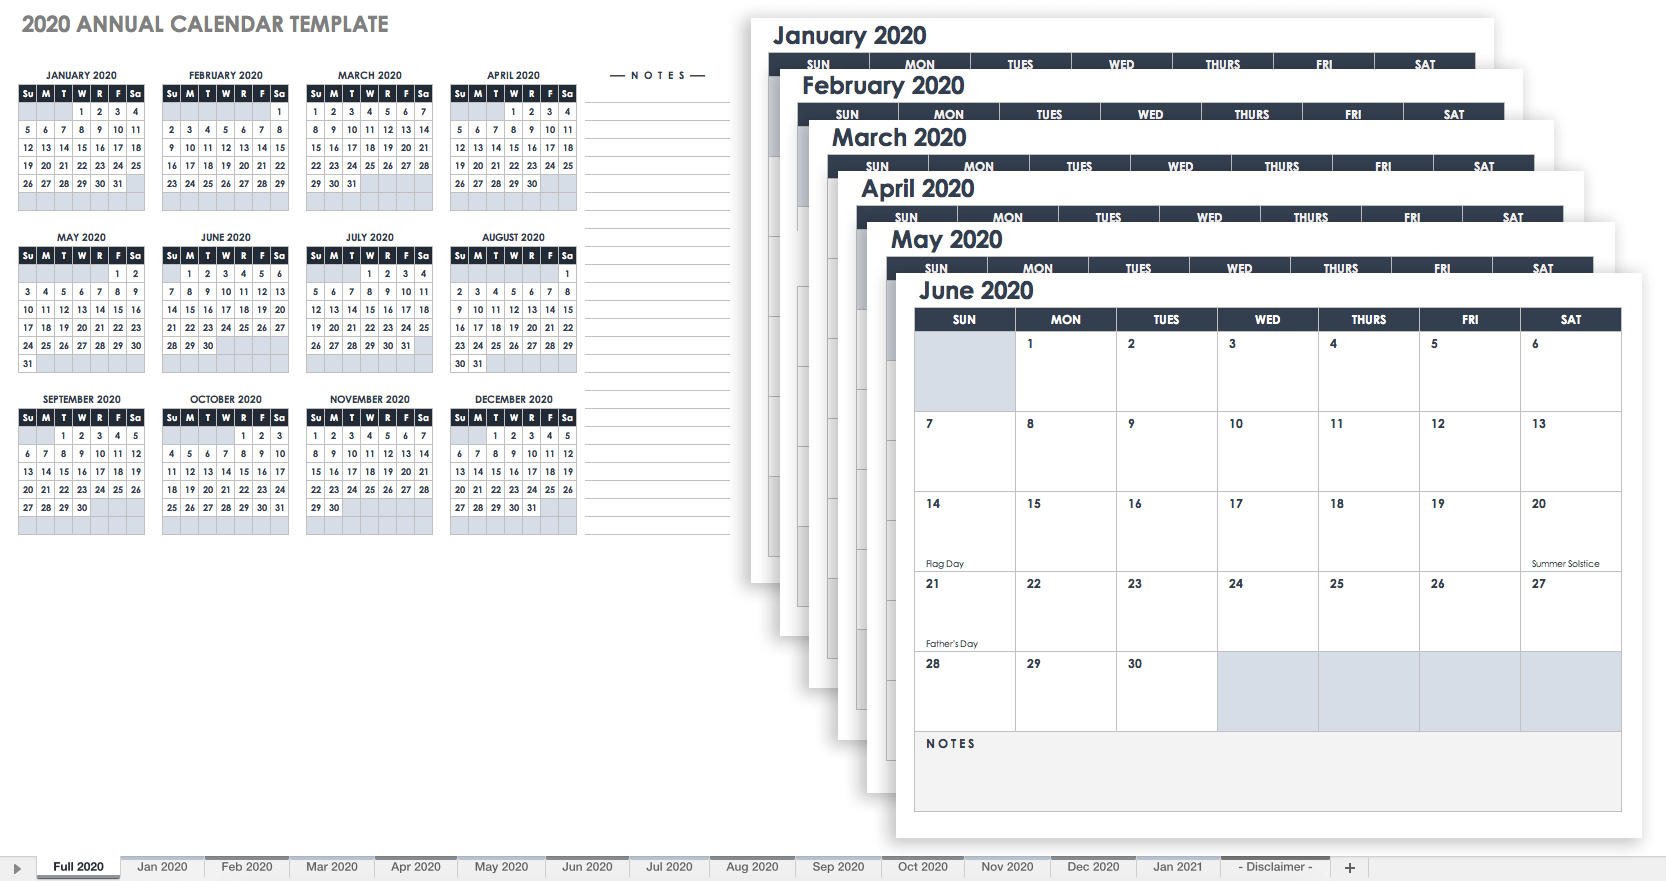 15 Free Monthly Calendar Templates | Smartsheet pertaining to Free Printable Calendar 2019 To 2020